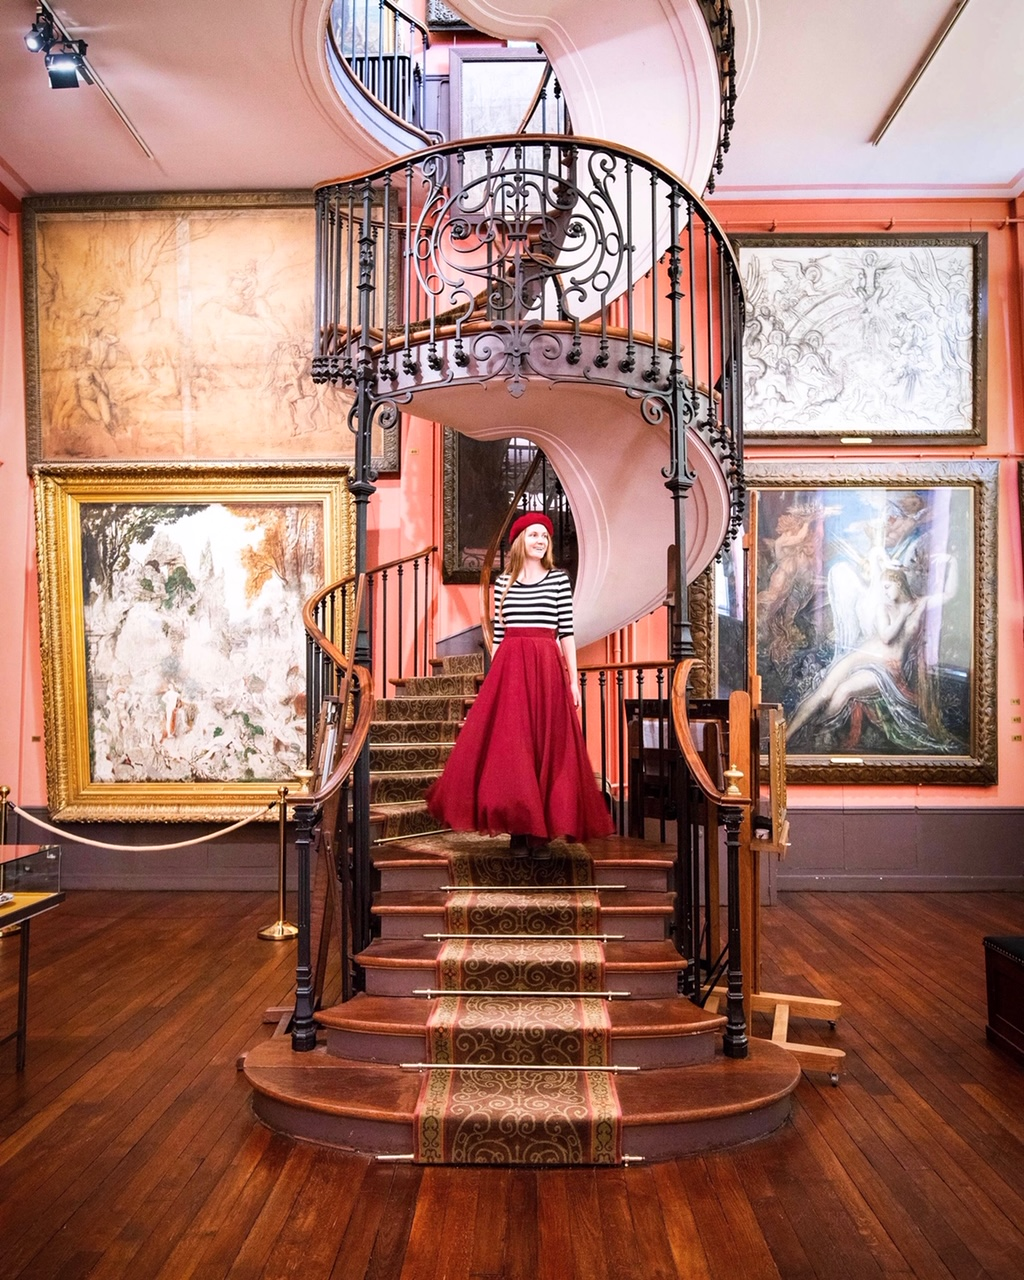 Unusual things to do in paris Gustavo Moreau Museum